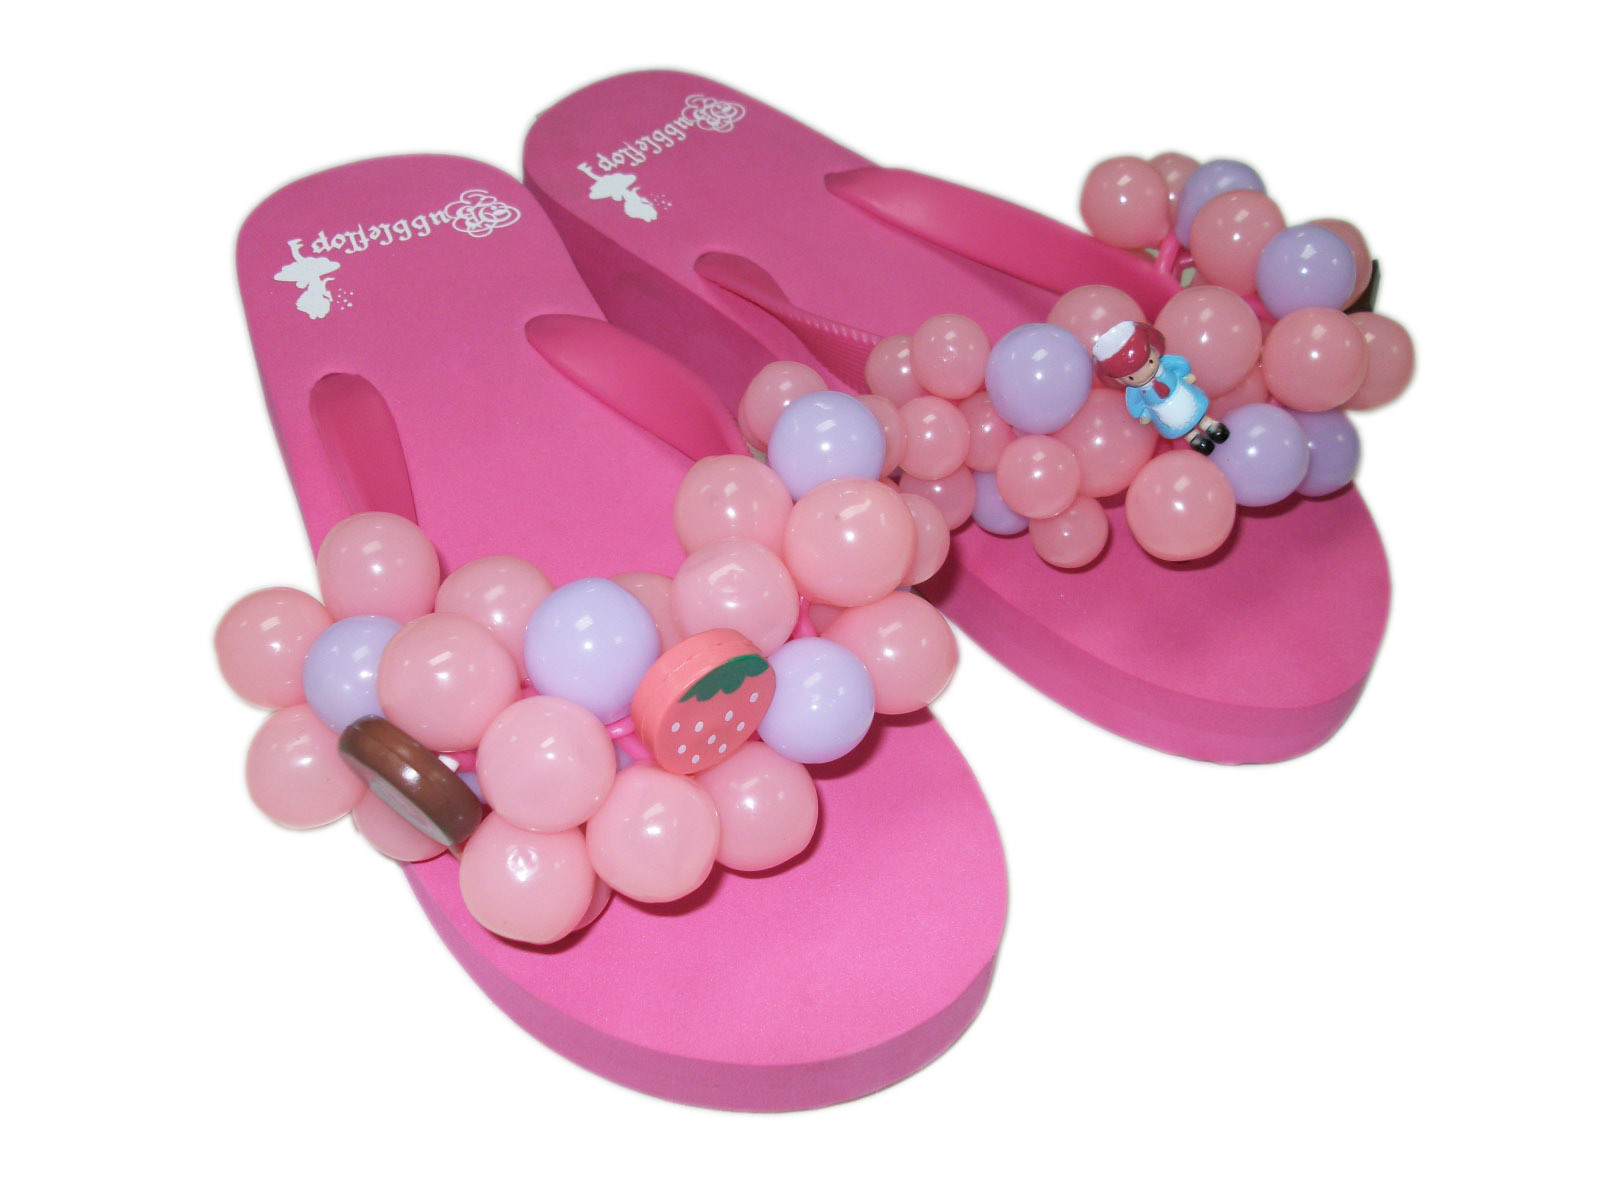 http://image.made-in-china.com/2f0j00MjHtYBJKLaoA/Slippers-RS025-.jpg